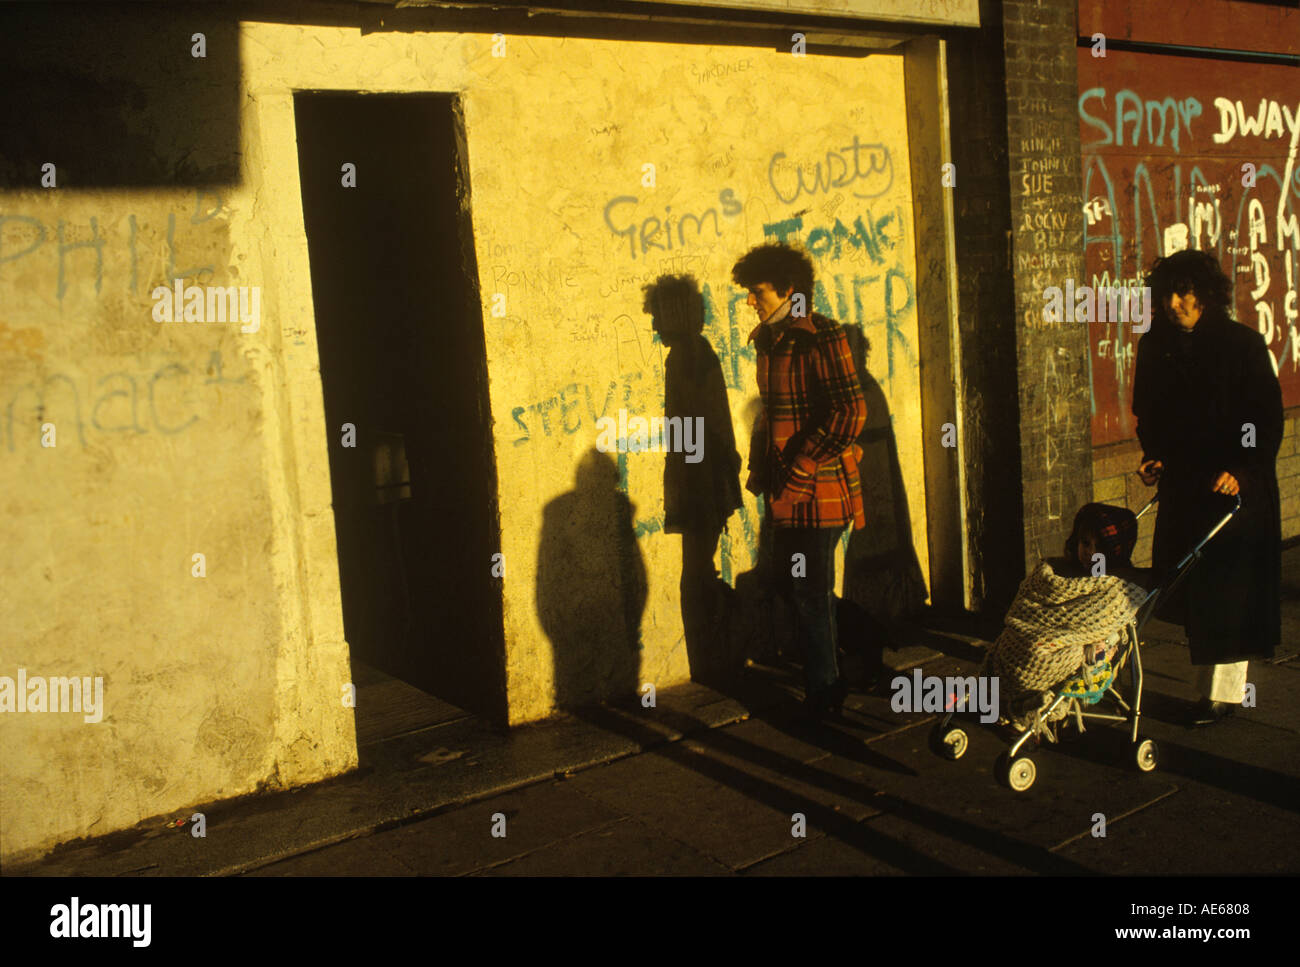 Protected shop - concrete wall where window once was narrow opening local corner store Liverpool Lancashire 1980s 80s Uk HOMER SYKES - Stock Image